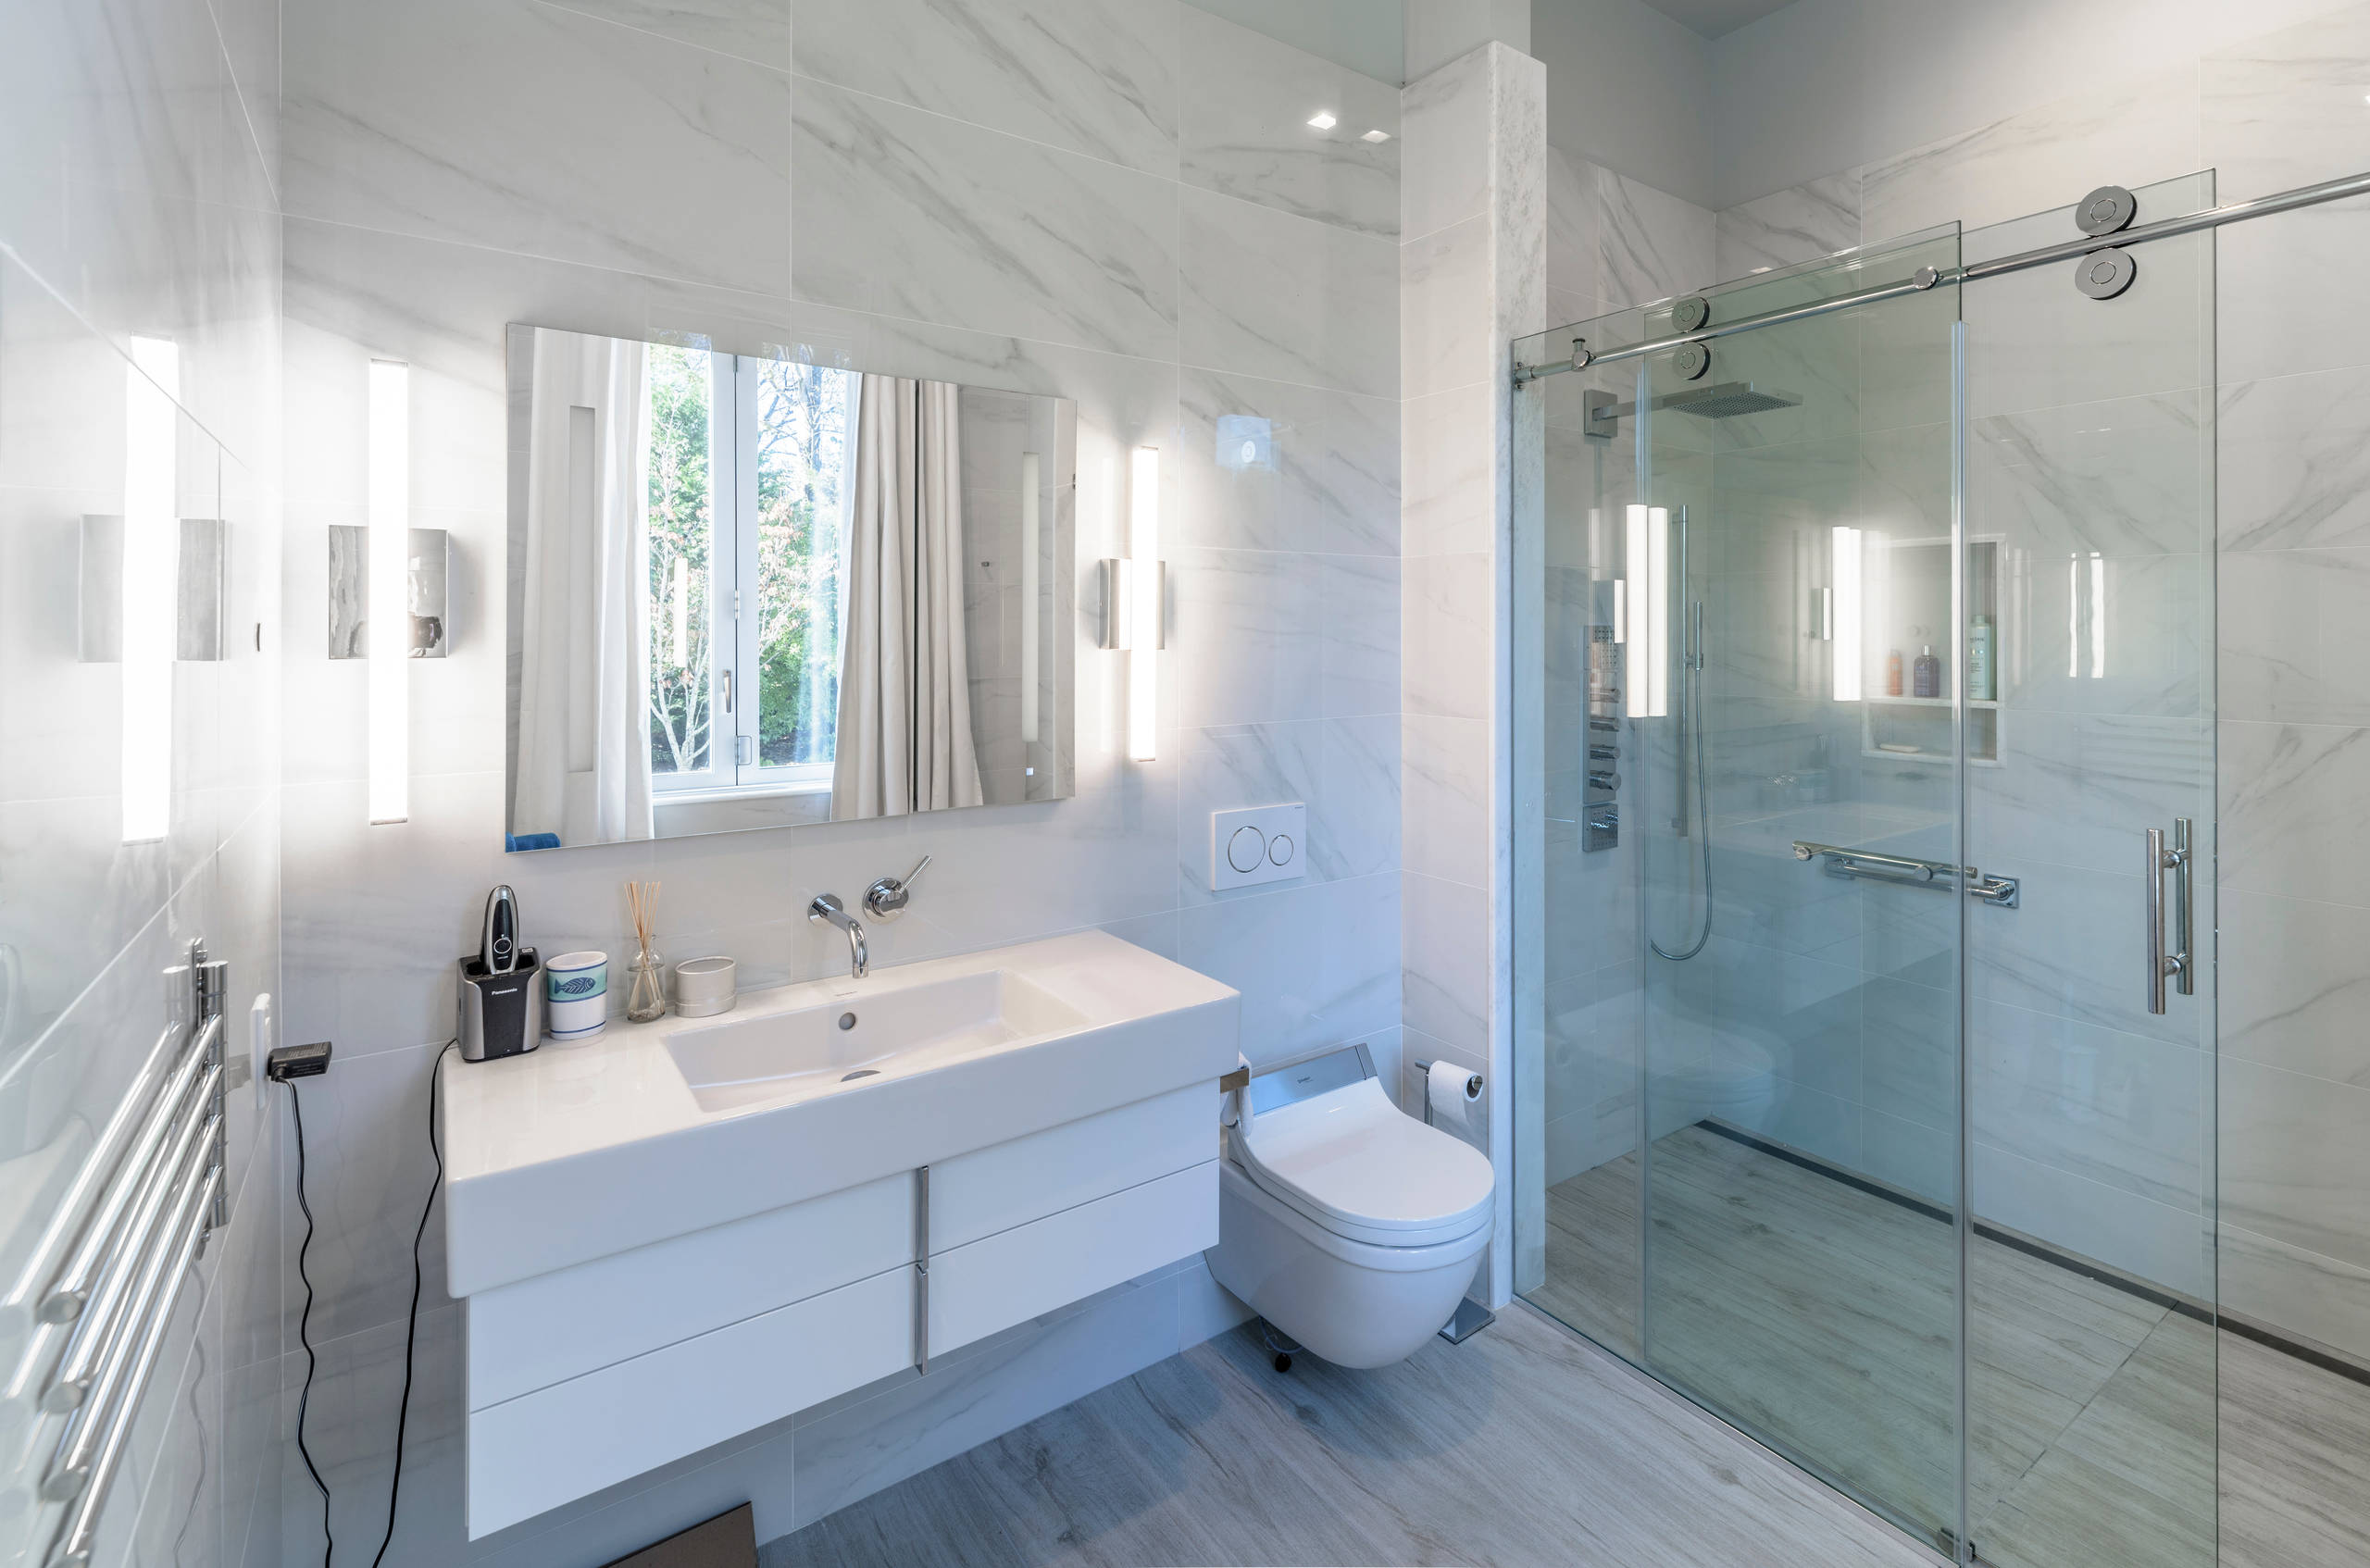 75 Beautiful Small Walk In Shower Pictures Ideas November 2020 Houzz